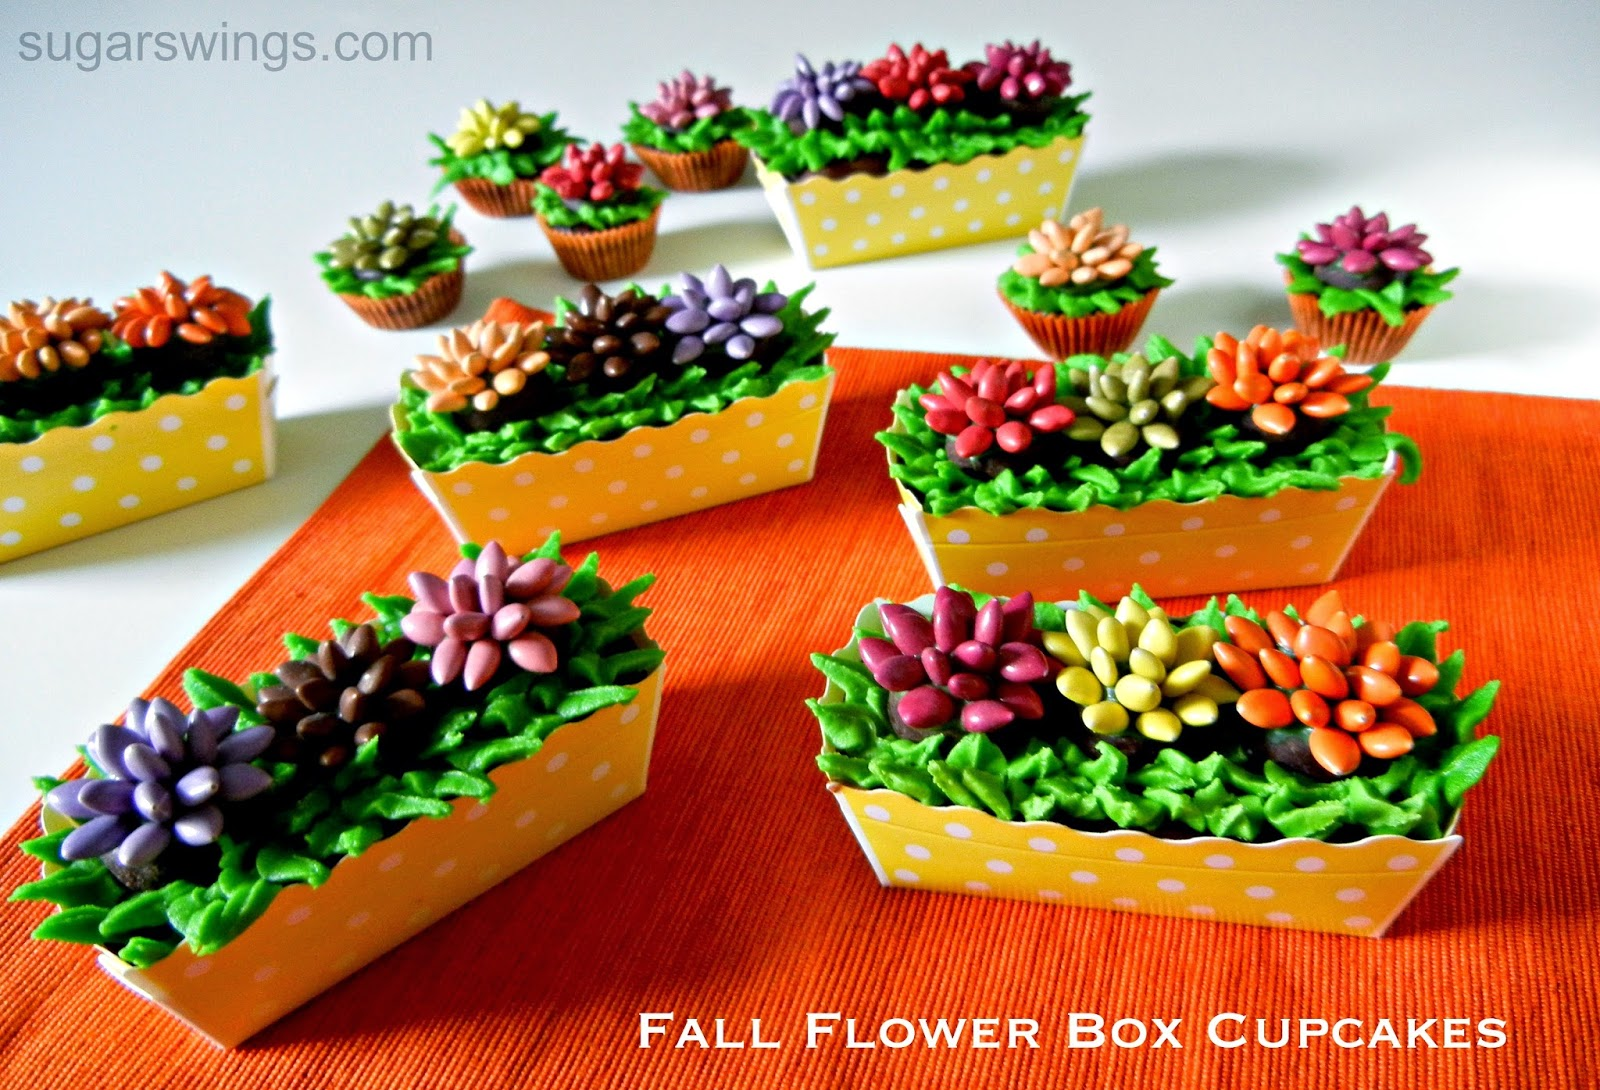 Sugar Swings Serve Some Fall Flower Box Cupcakes